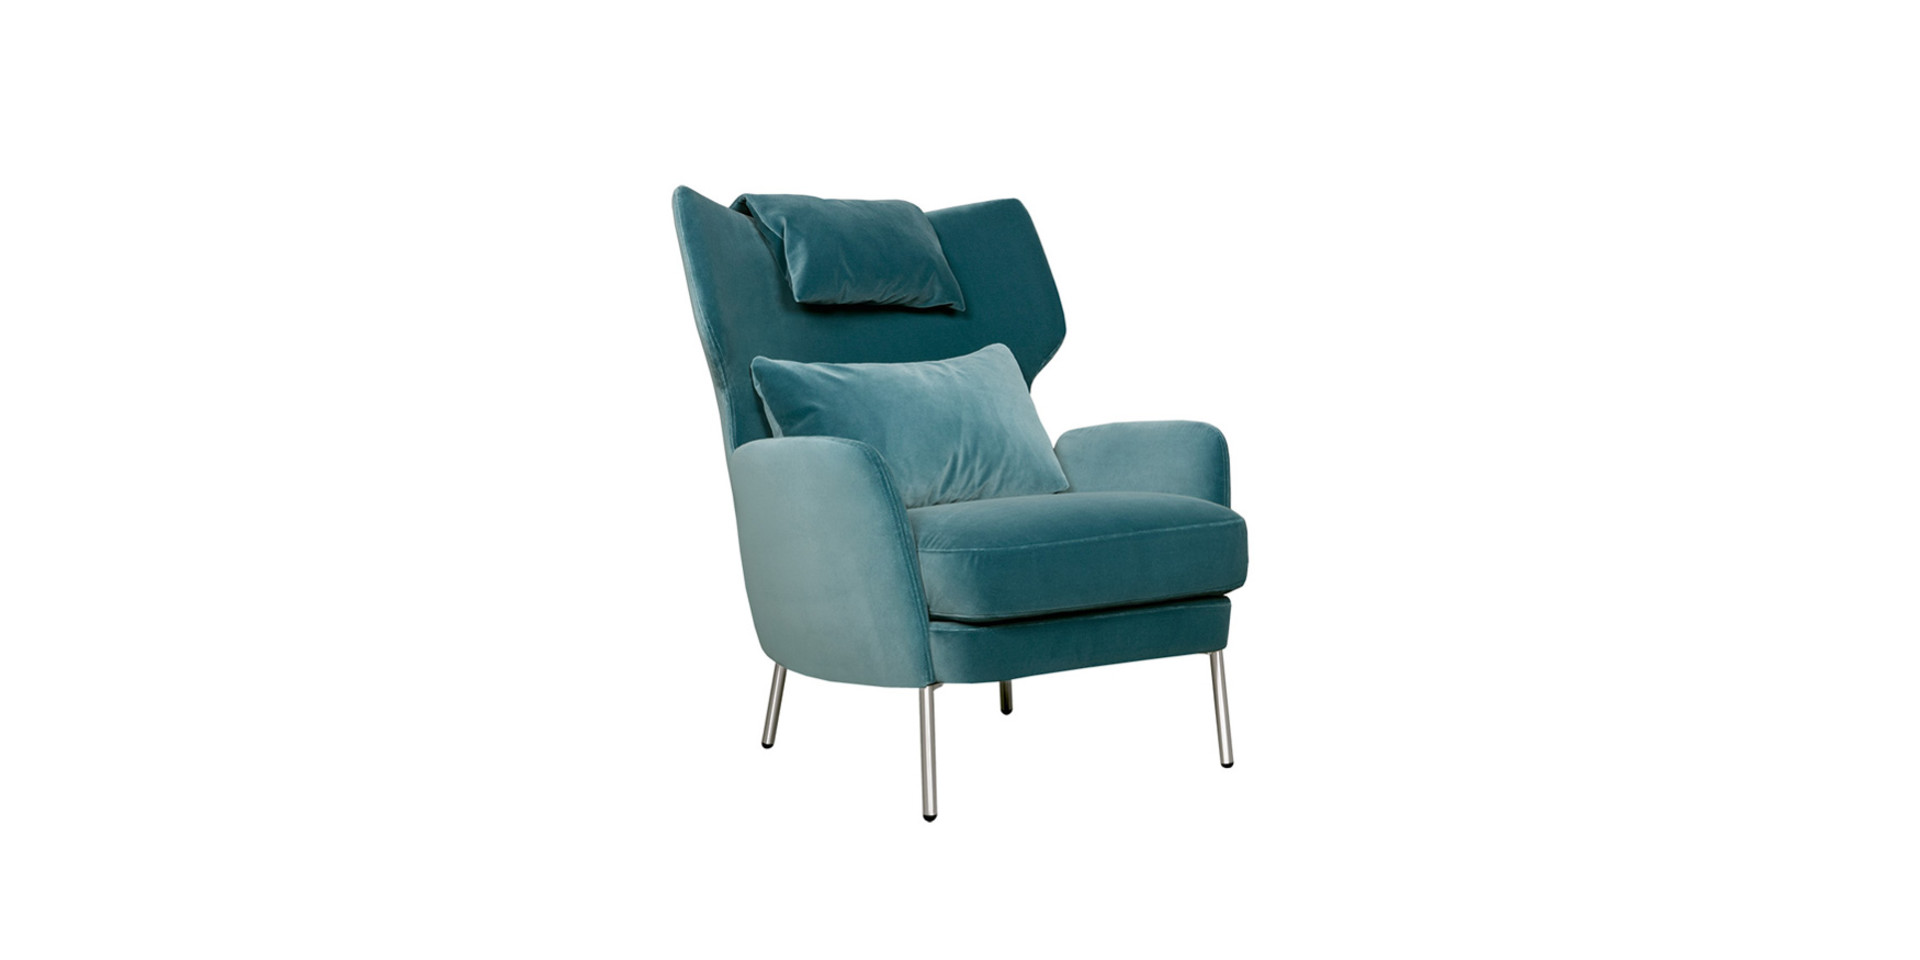 ALEX_armchair_headrest_lario1406_turquoise_2